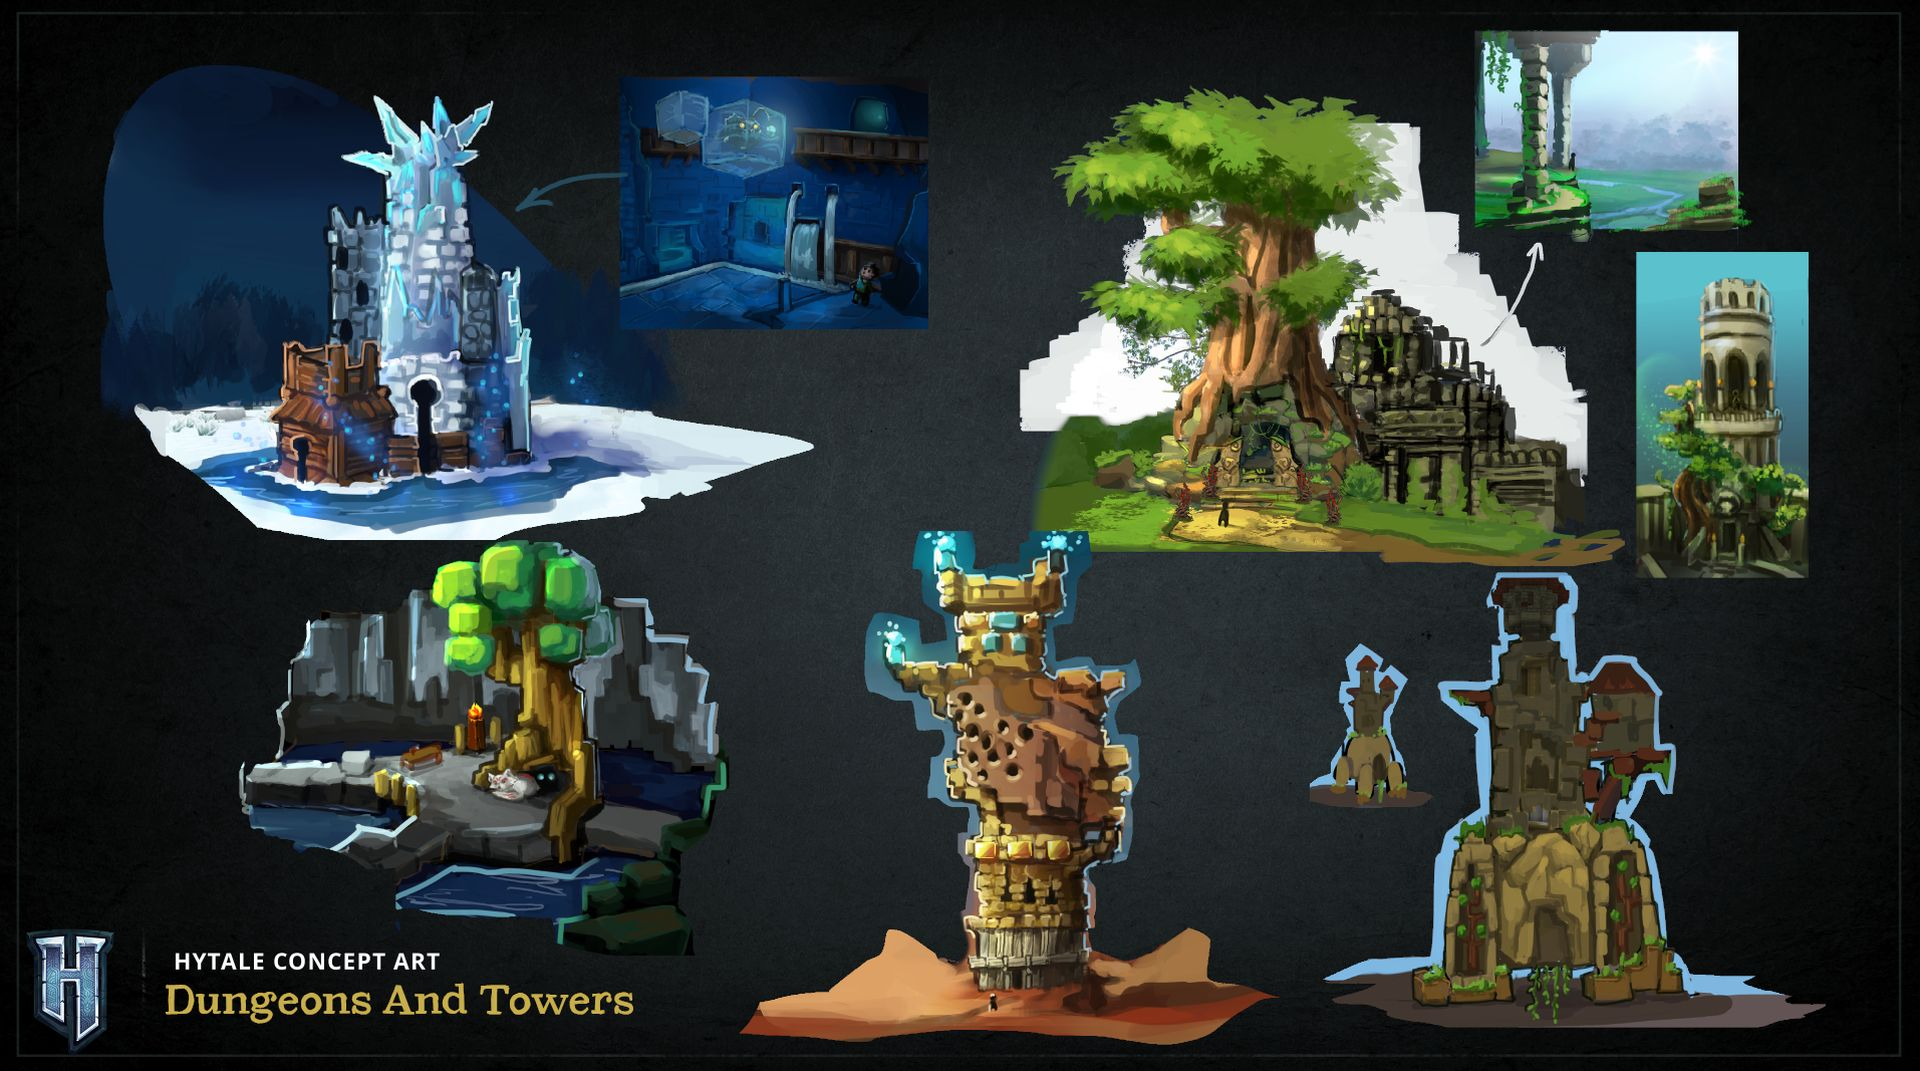 Concept Idee Concept Arts - Hytale-world